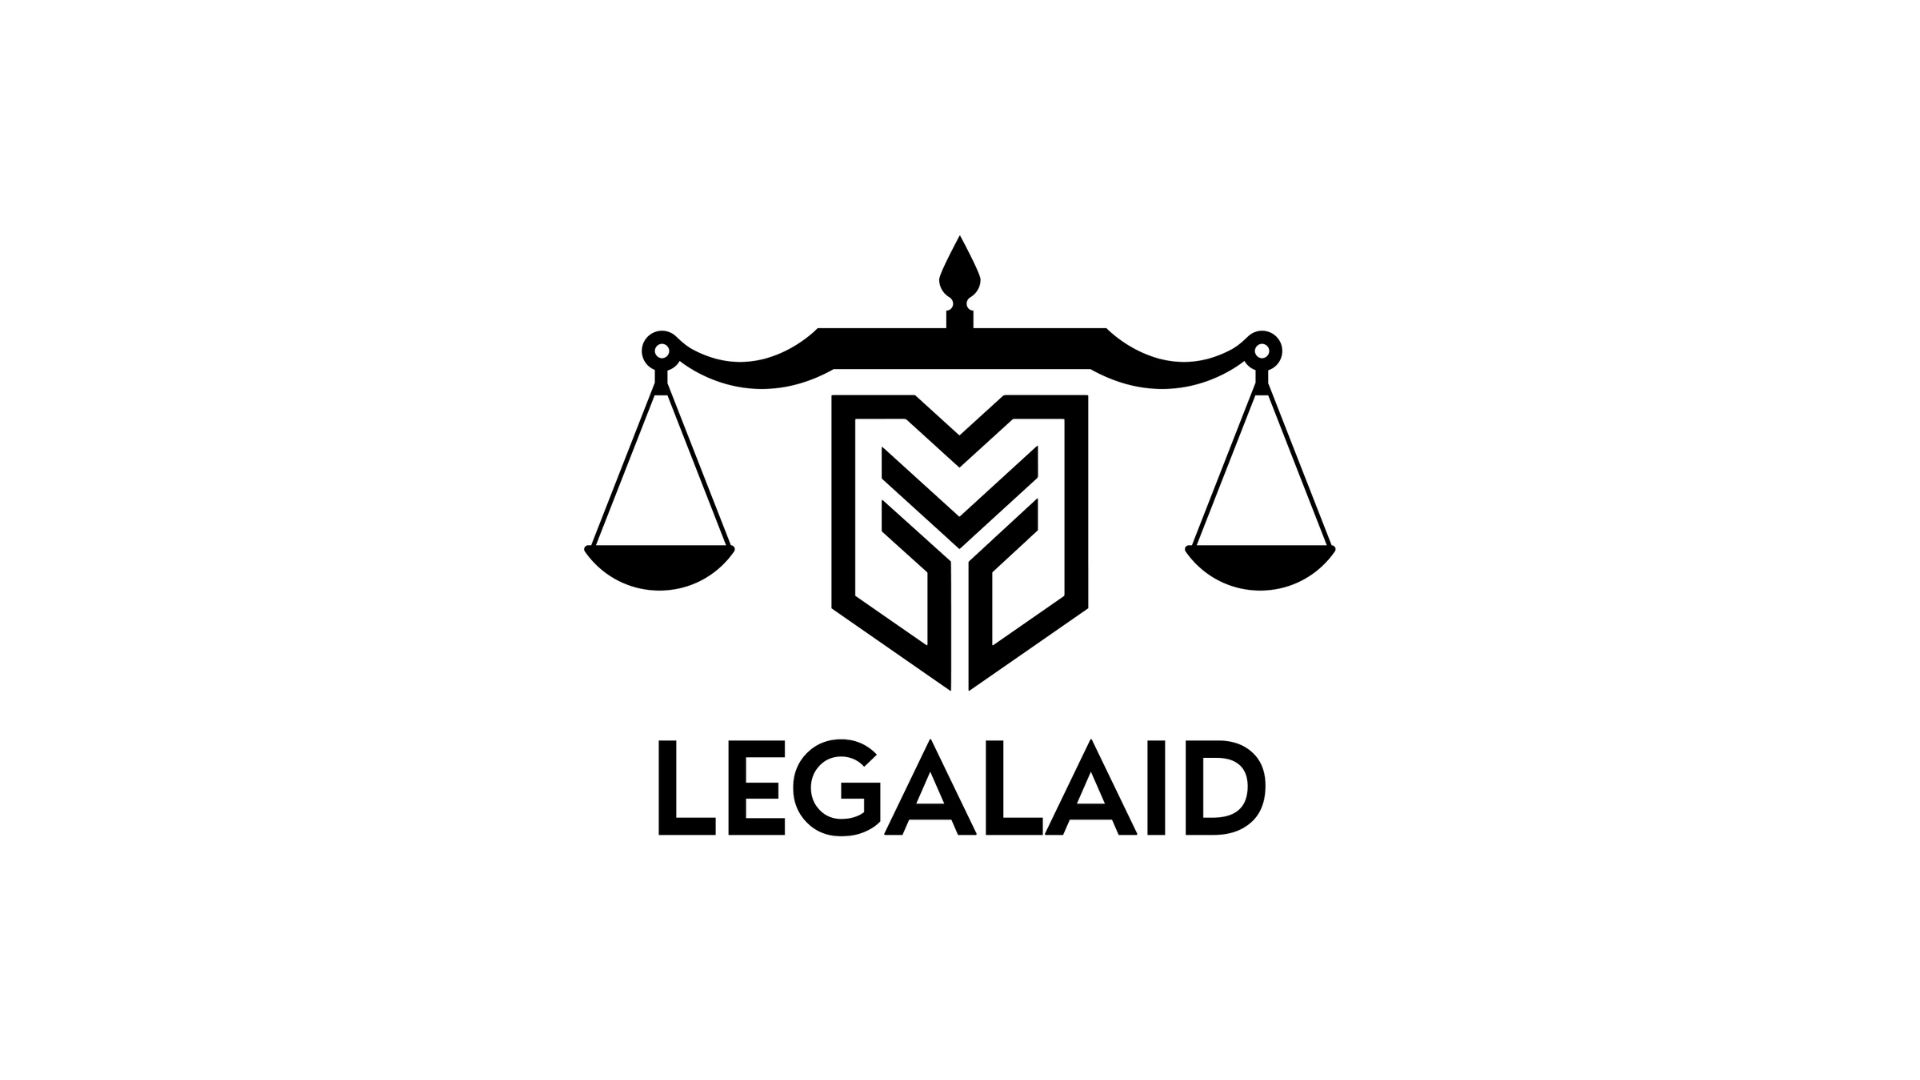 The Legalaid application